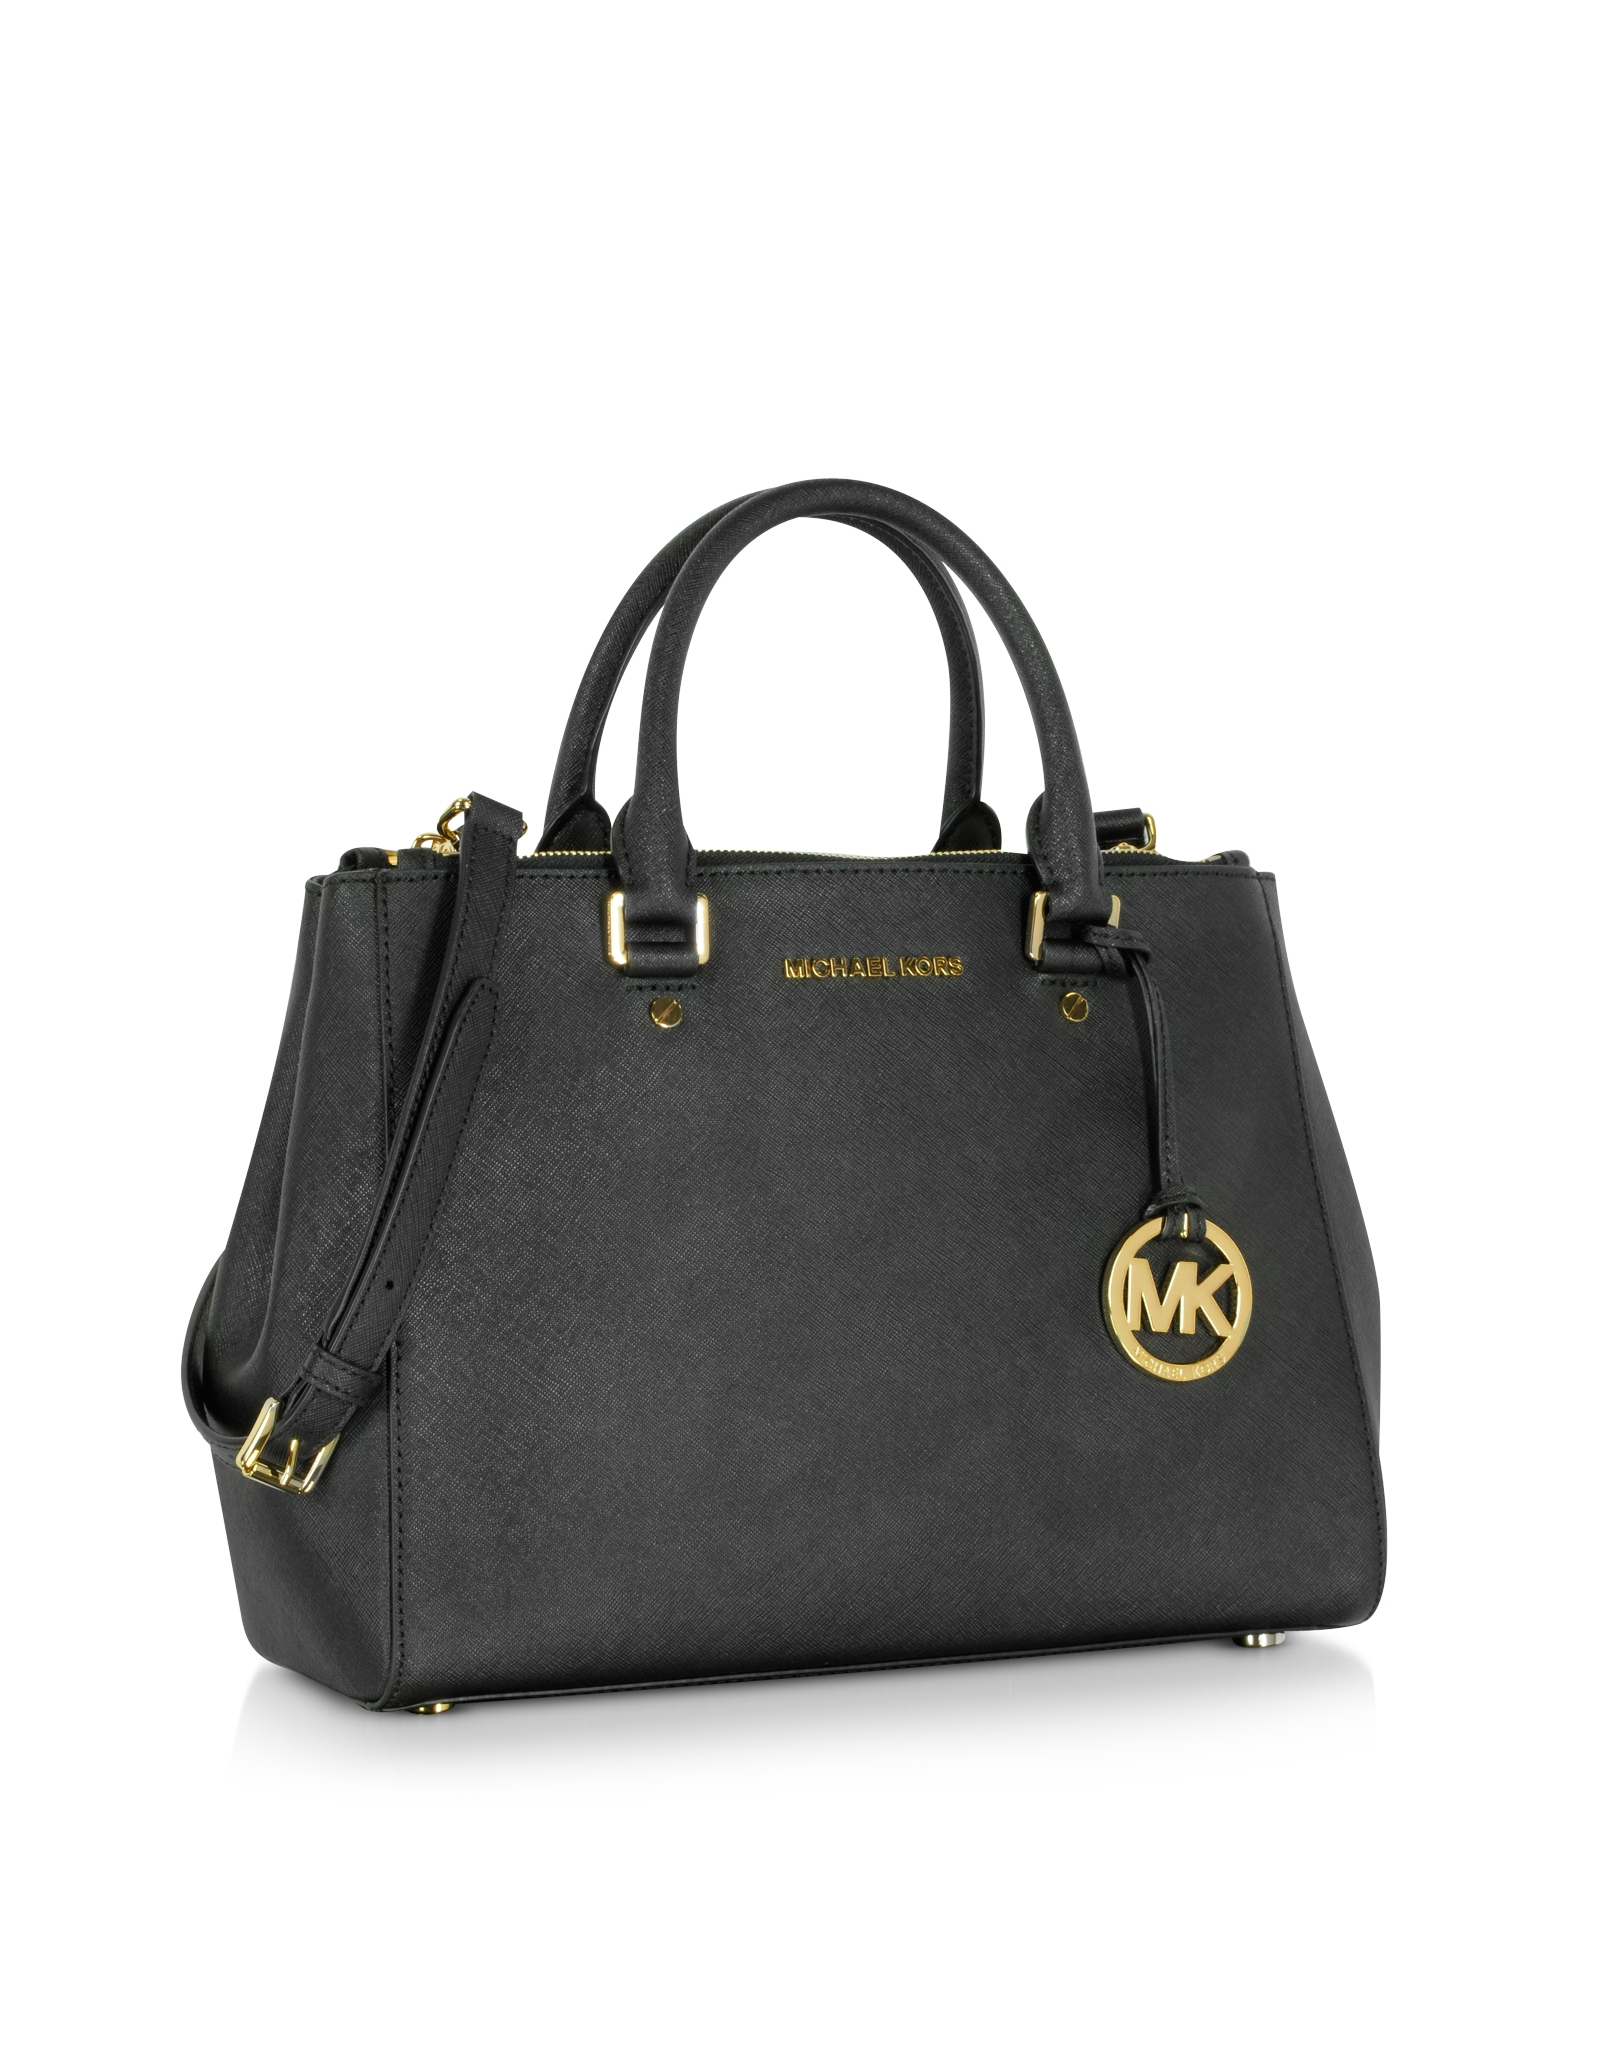 c67fd5eb3be8 ... canada lyst michael kors sutton medium saffiano leather satchel bag in  black 42dcd 543be